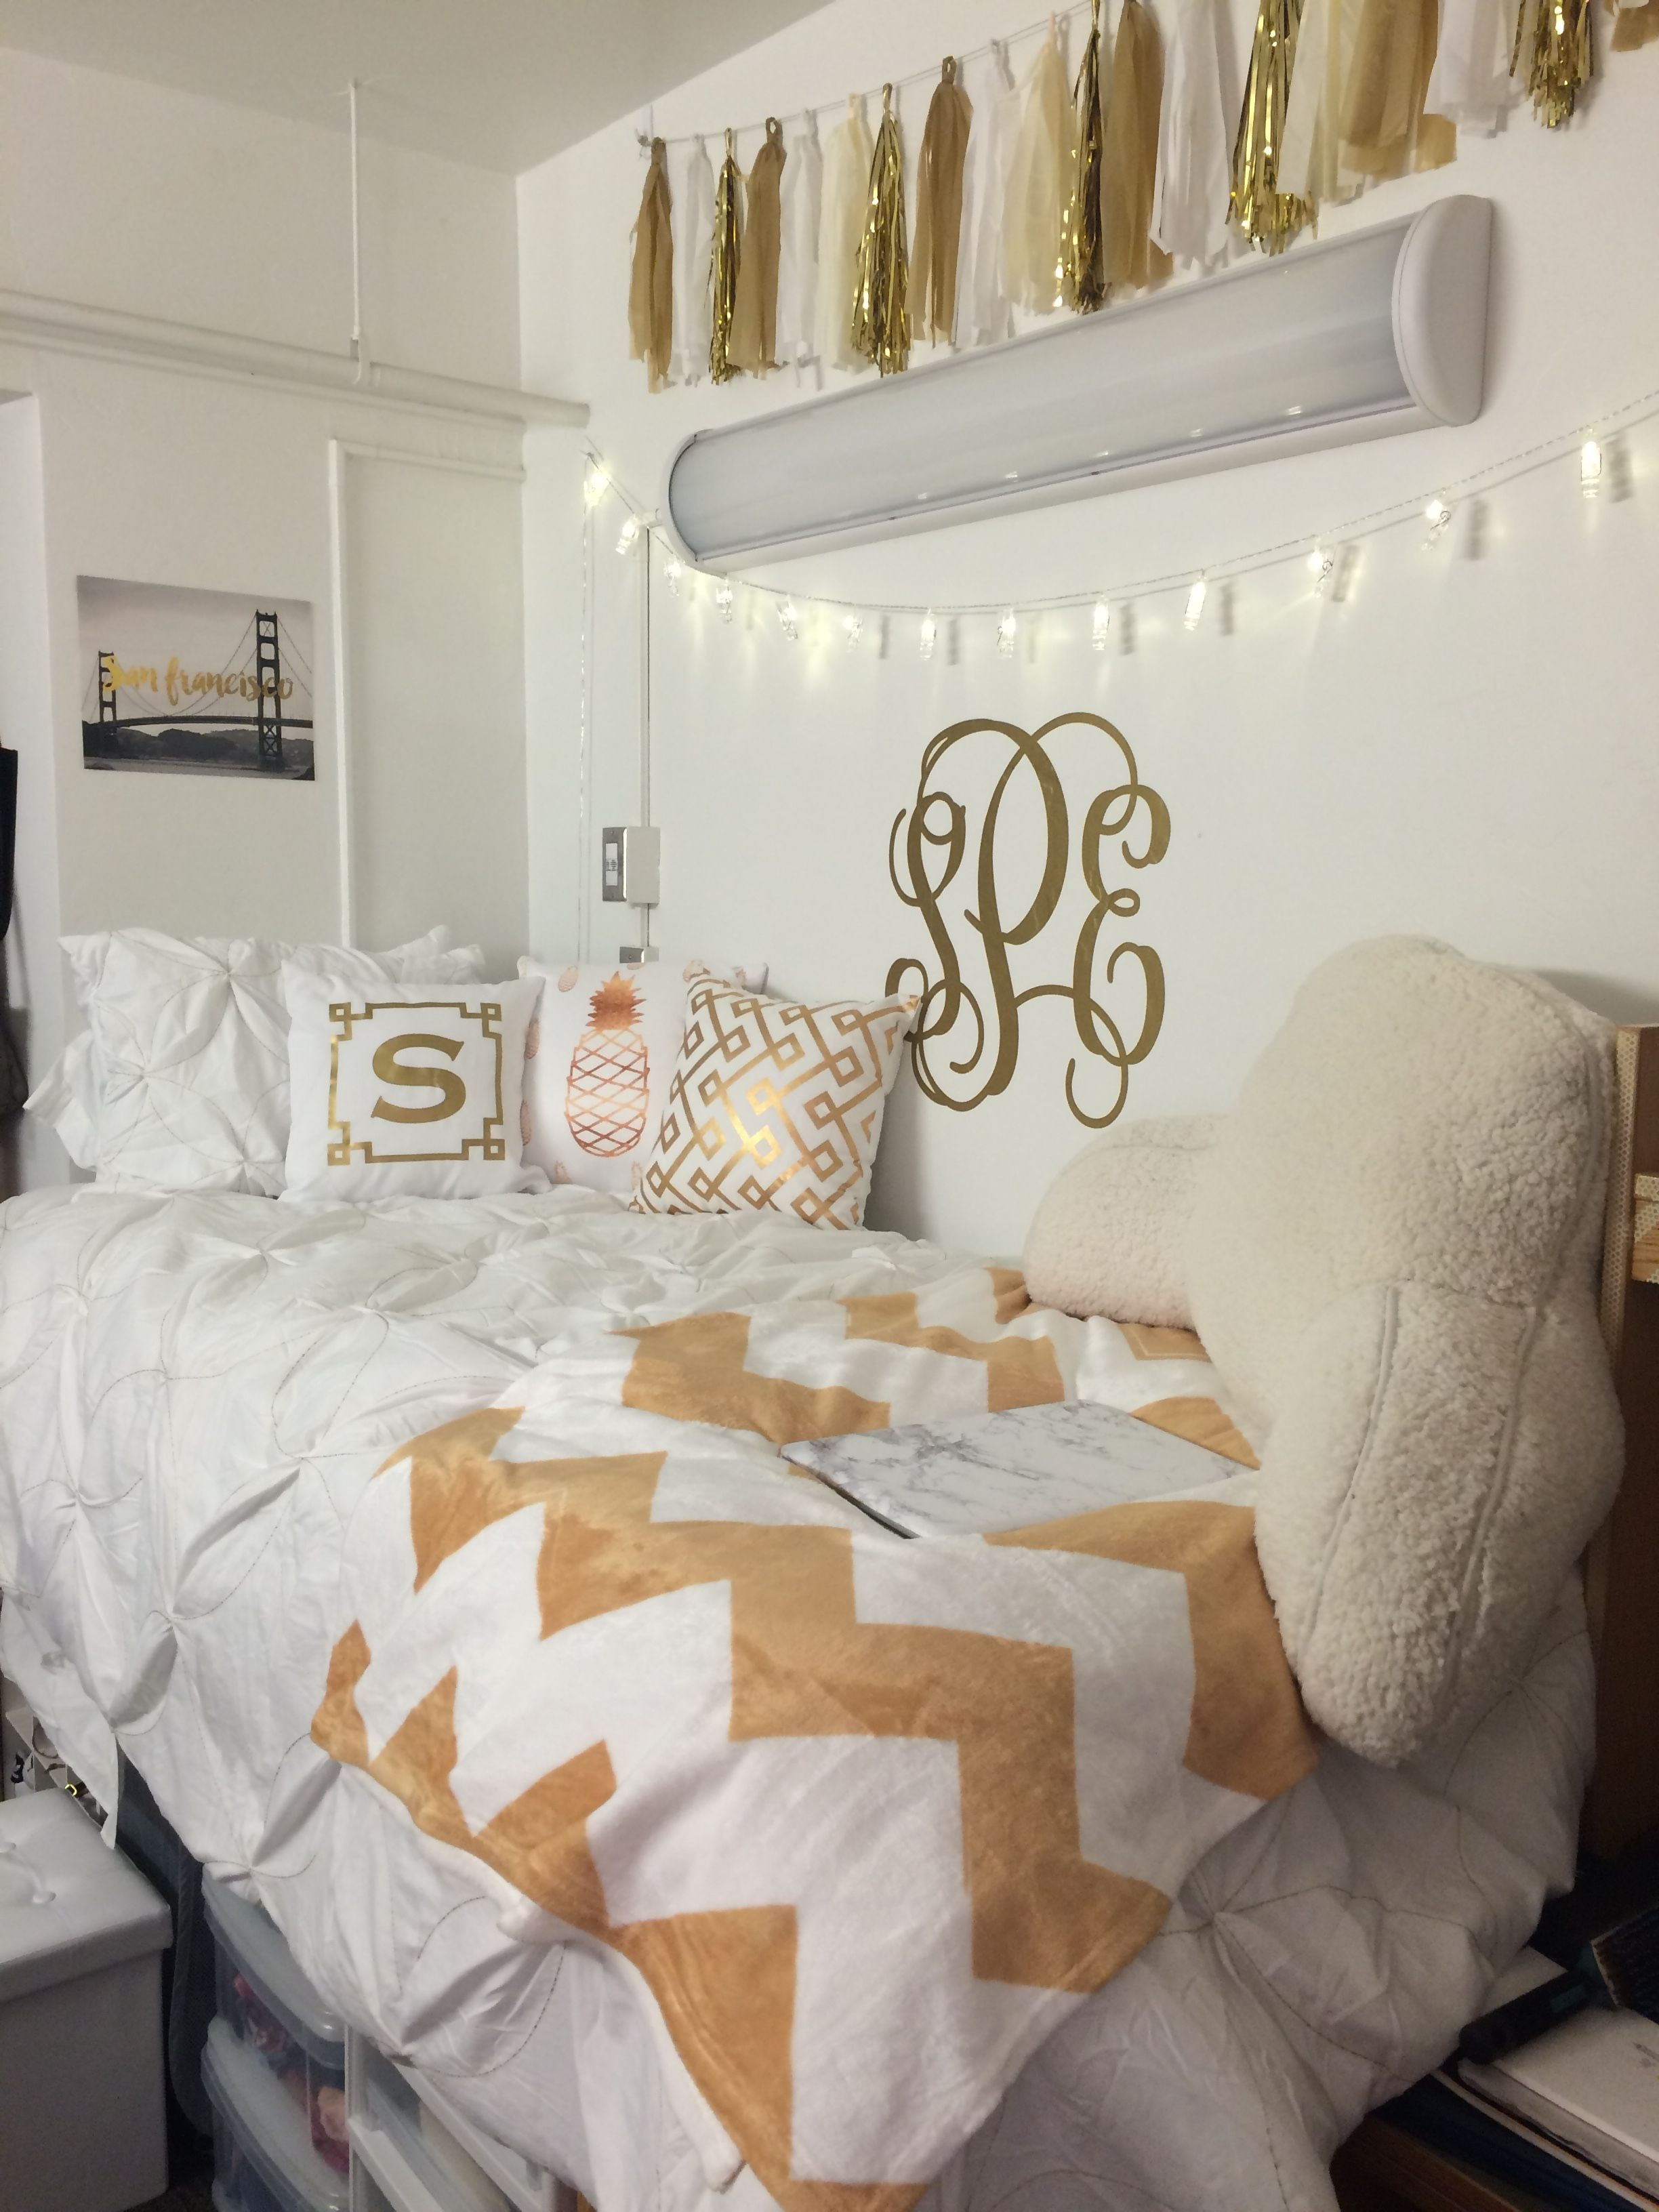 White And Gold Dorm Room University Of Arizona Goldbedding Dorm Room Inspiration Gold Bedroom Decor Girl Bedroom Decor